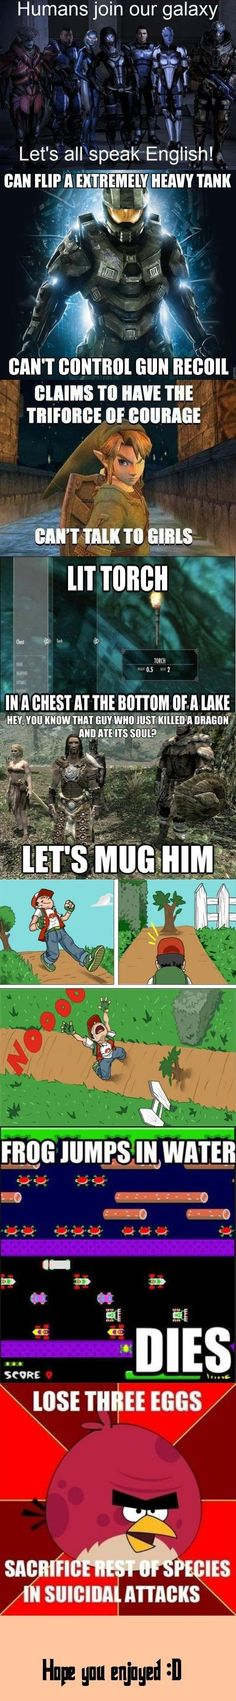 Video Game Logic - Imgur BTW...for the best game cheats, tips, check out: http://cheating-games.imobileappsys.com/